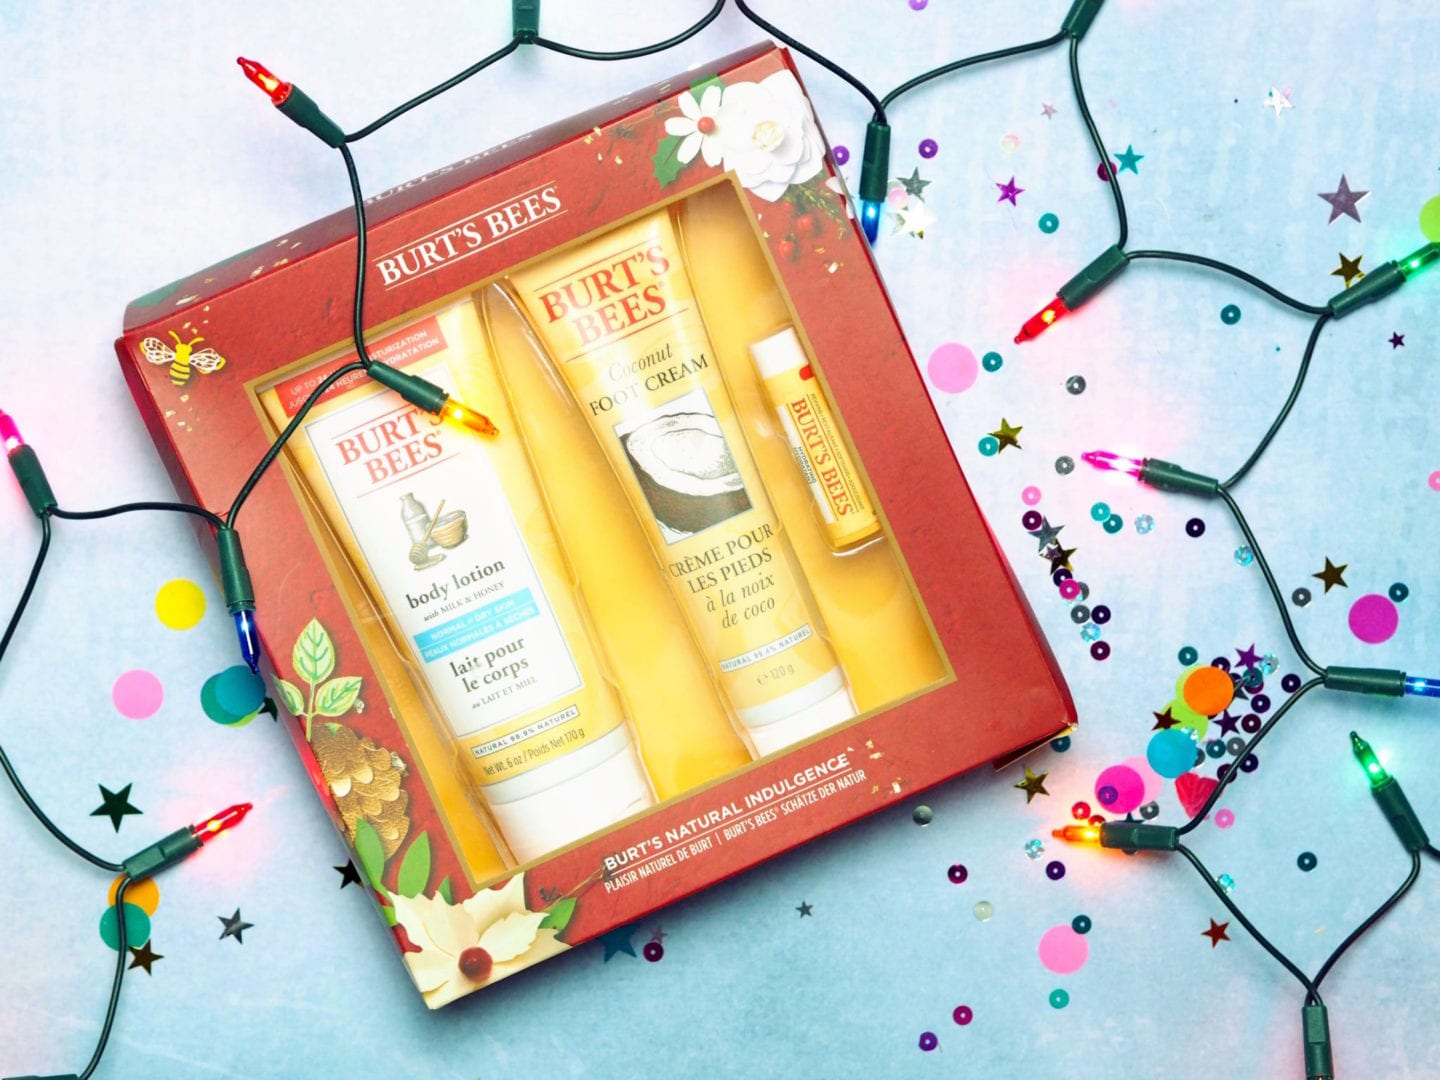 Burt's Bees 'Burt's Natural Indulgence' Set